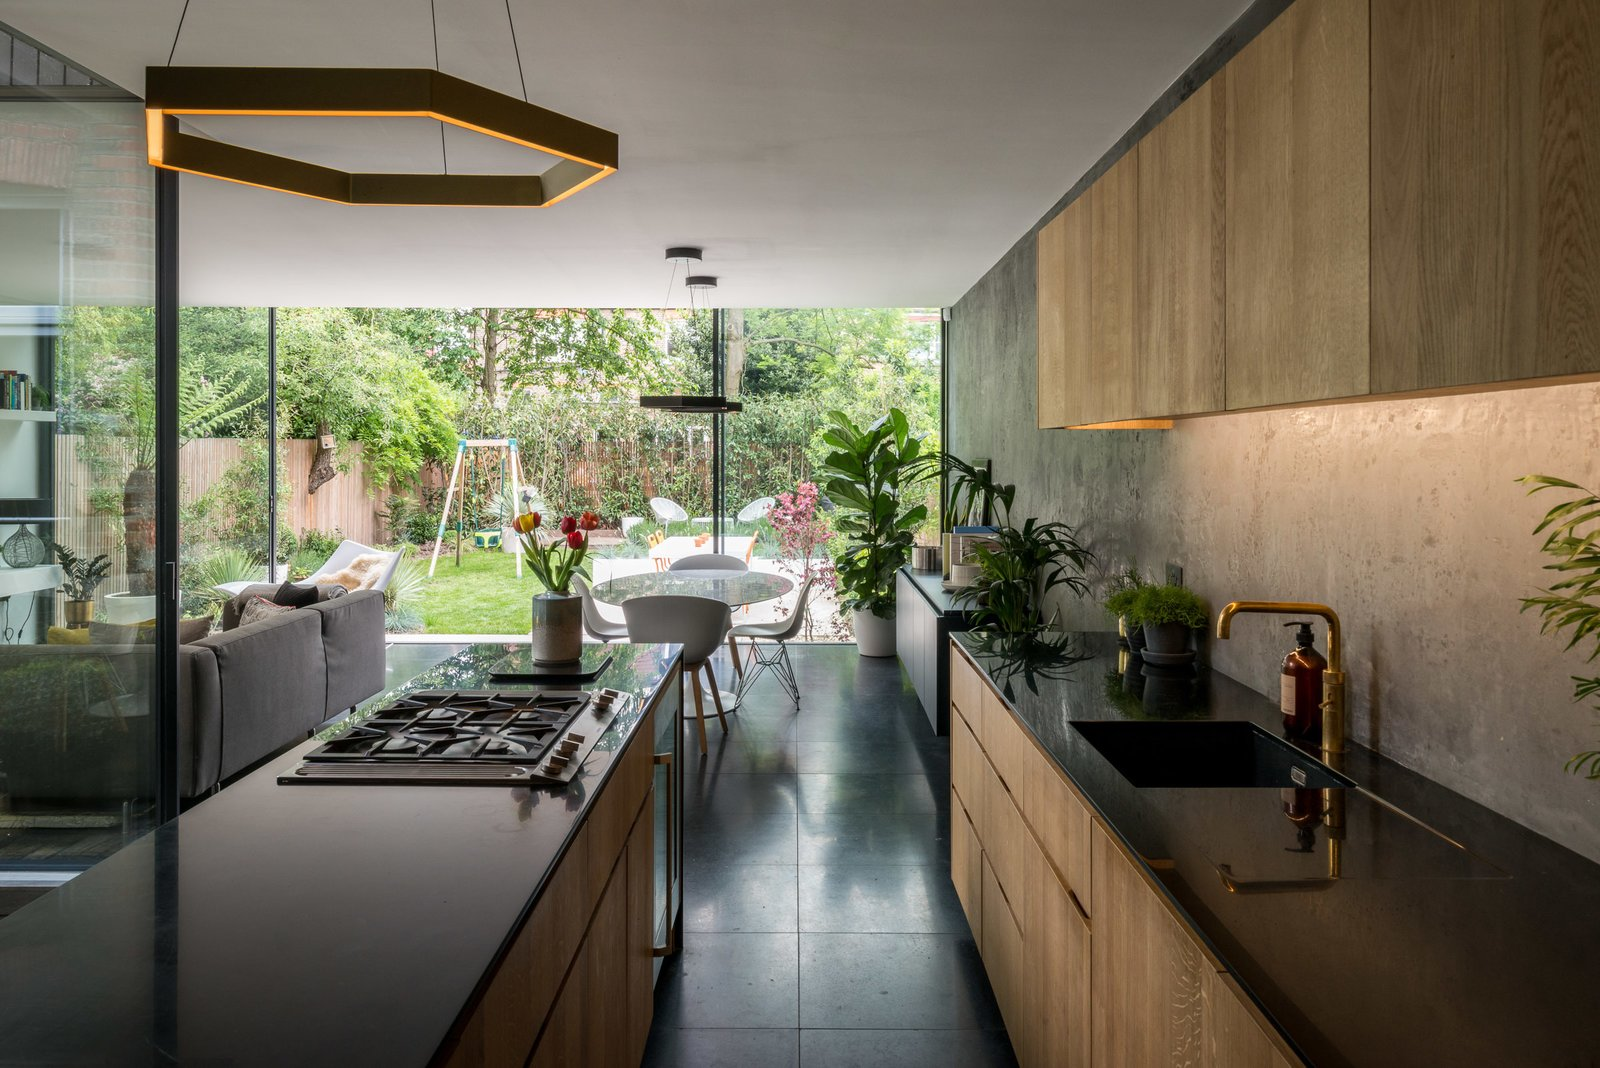 Kitchen, Terrazzo, Undermount, Pendant, Wood, Cooktops, and Concrete Arranged in an open plan with dark, terrazzo-tiled flooring, the main living space consists of the kitchen, dining area, and living room.     Kitchen Cooktops Undermount Concrete Photos from A Swoon-Worthy London Apartment Is Listed For £1.8M